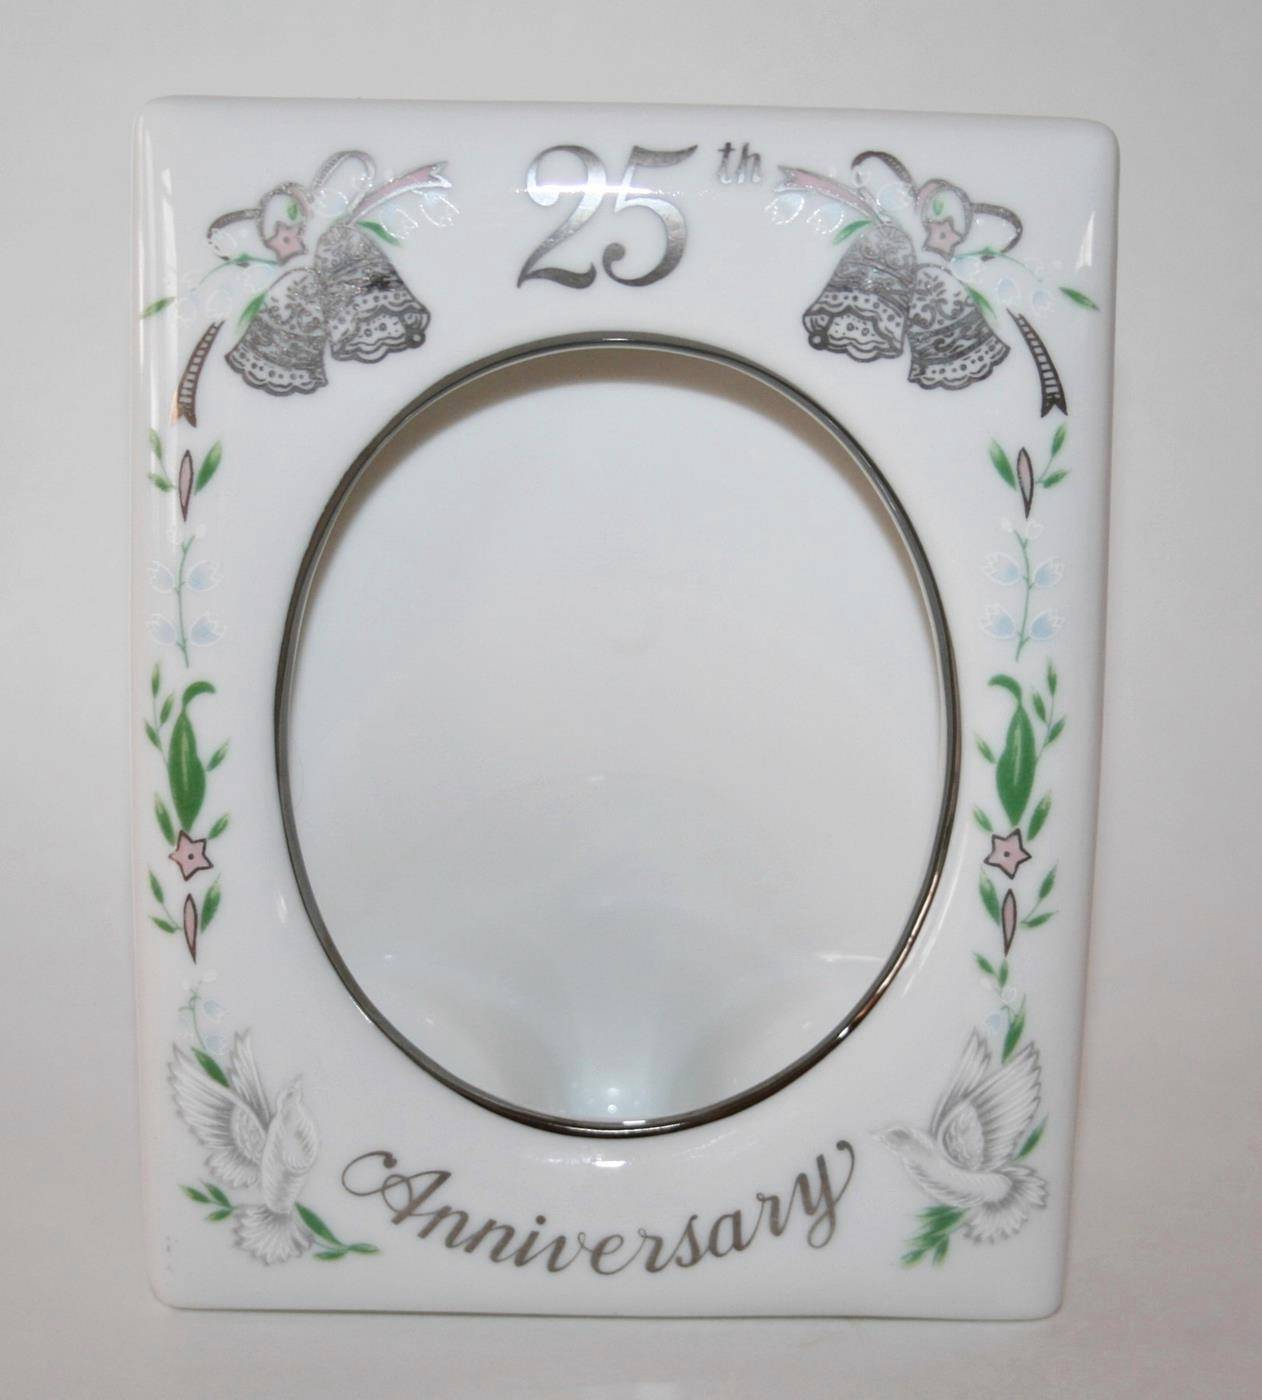 1984 Lefton China 25th Wedding Anniversary Photo Frame Never Used #1616